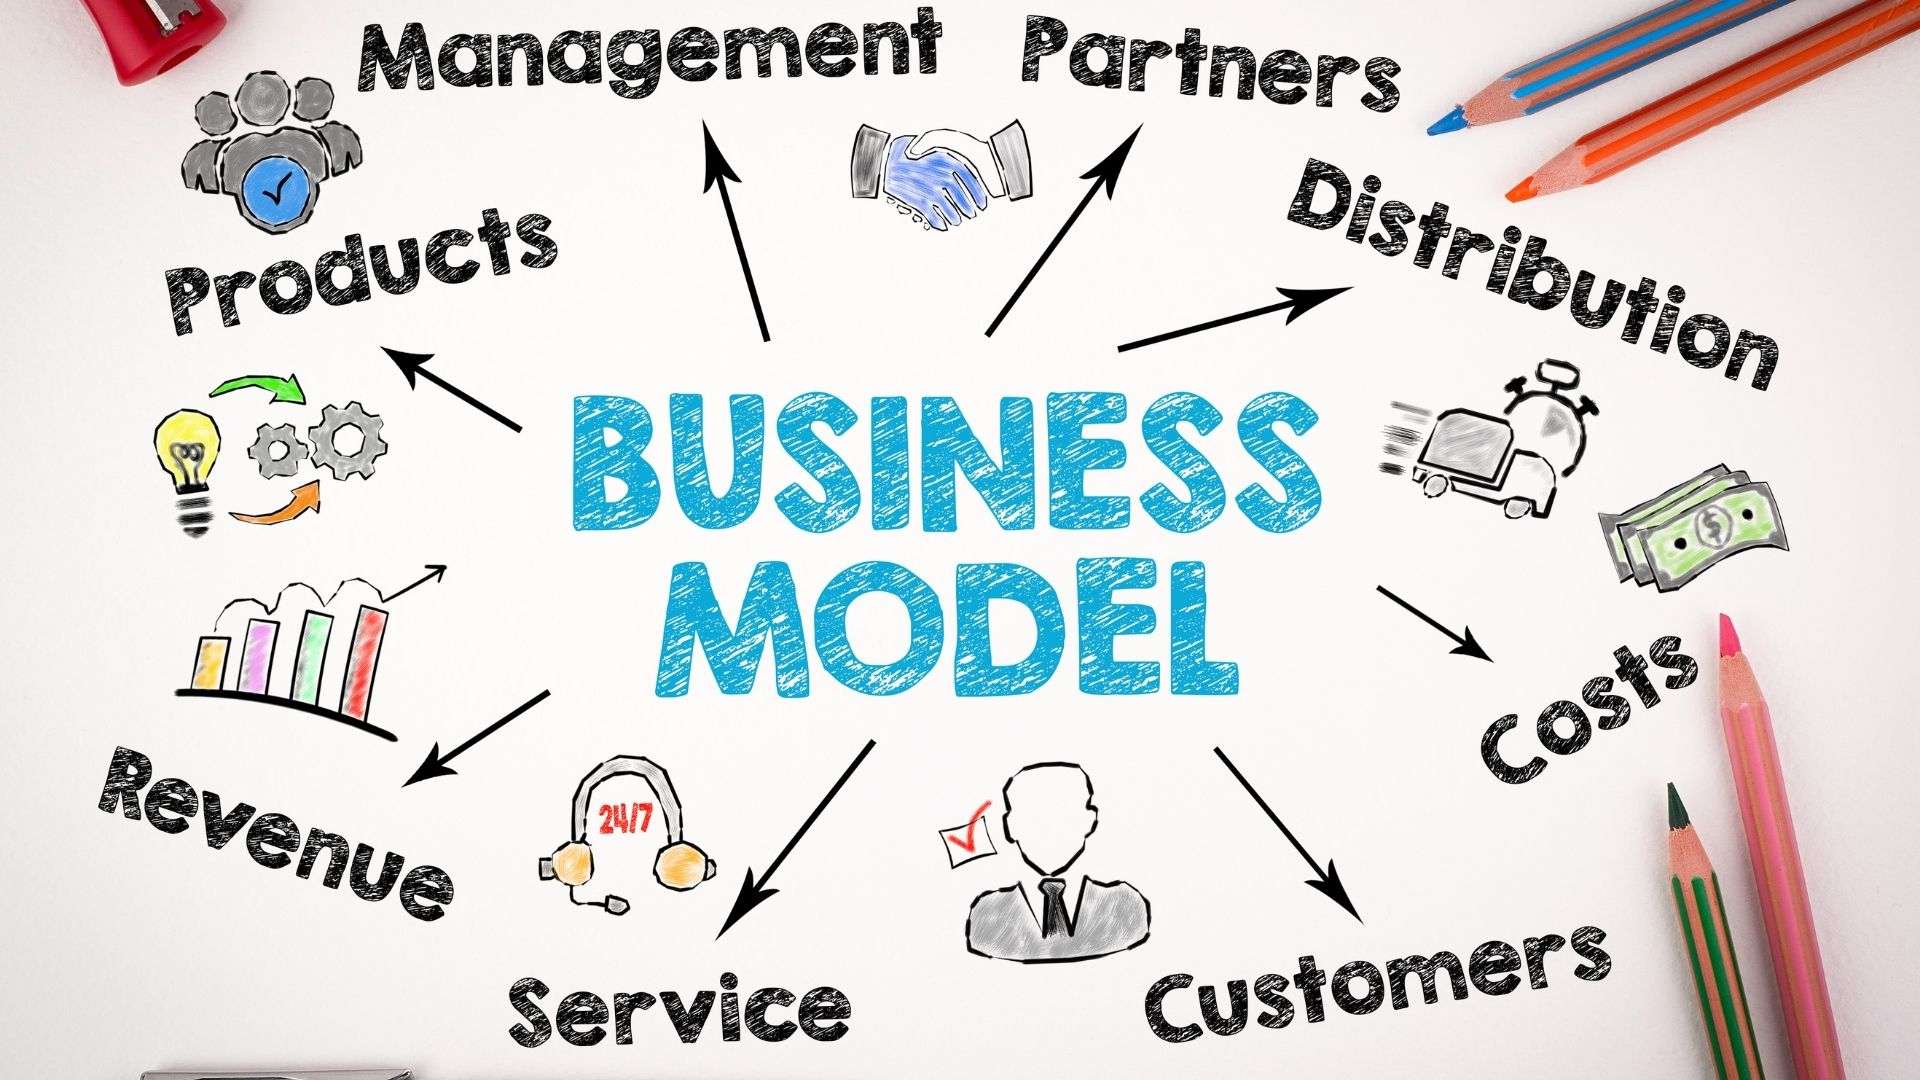 Learning from the disrupters - how finance brands can build transformative business models 38